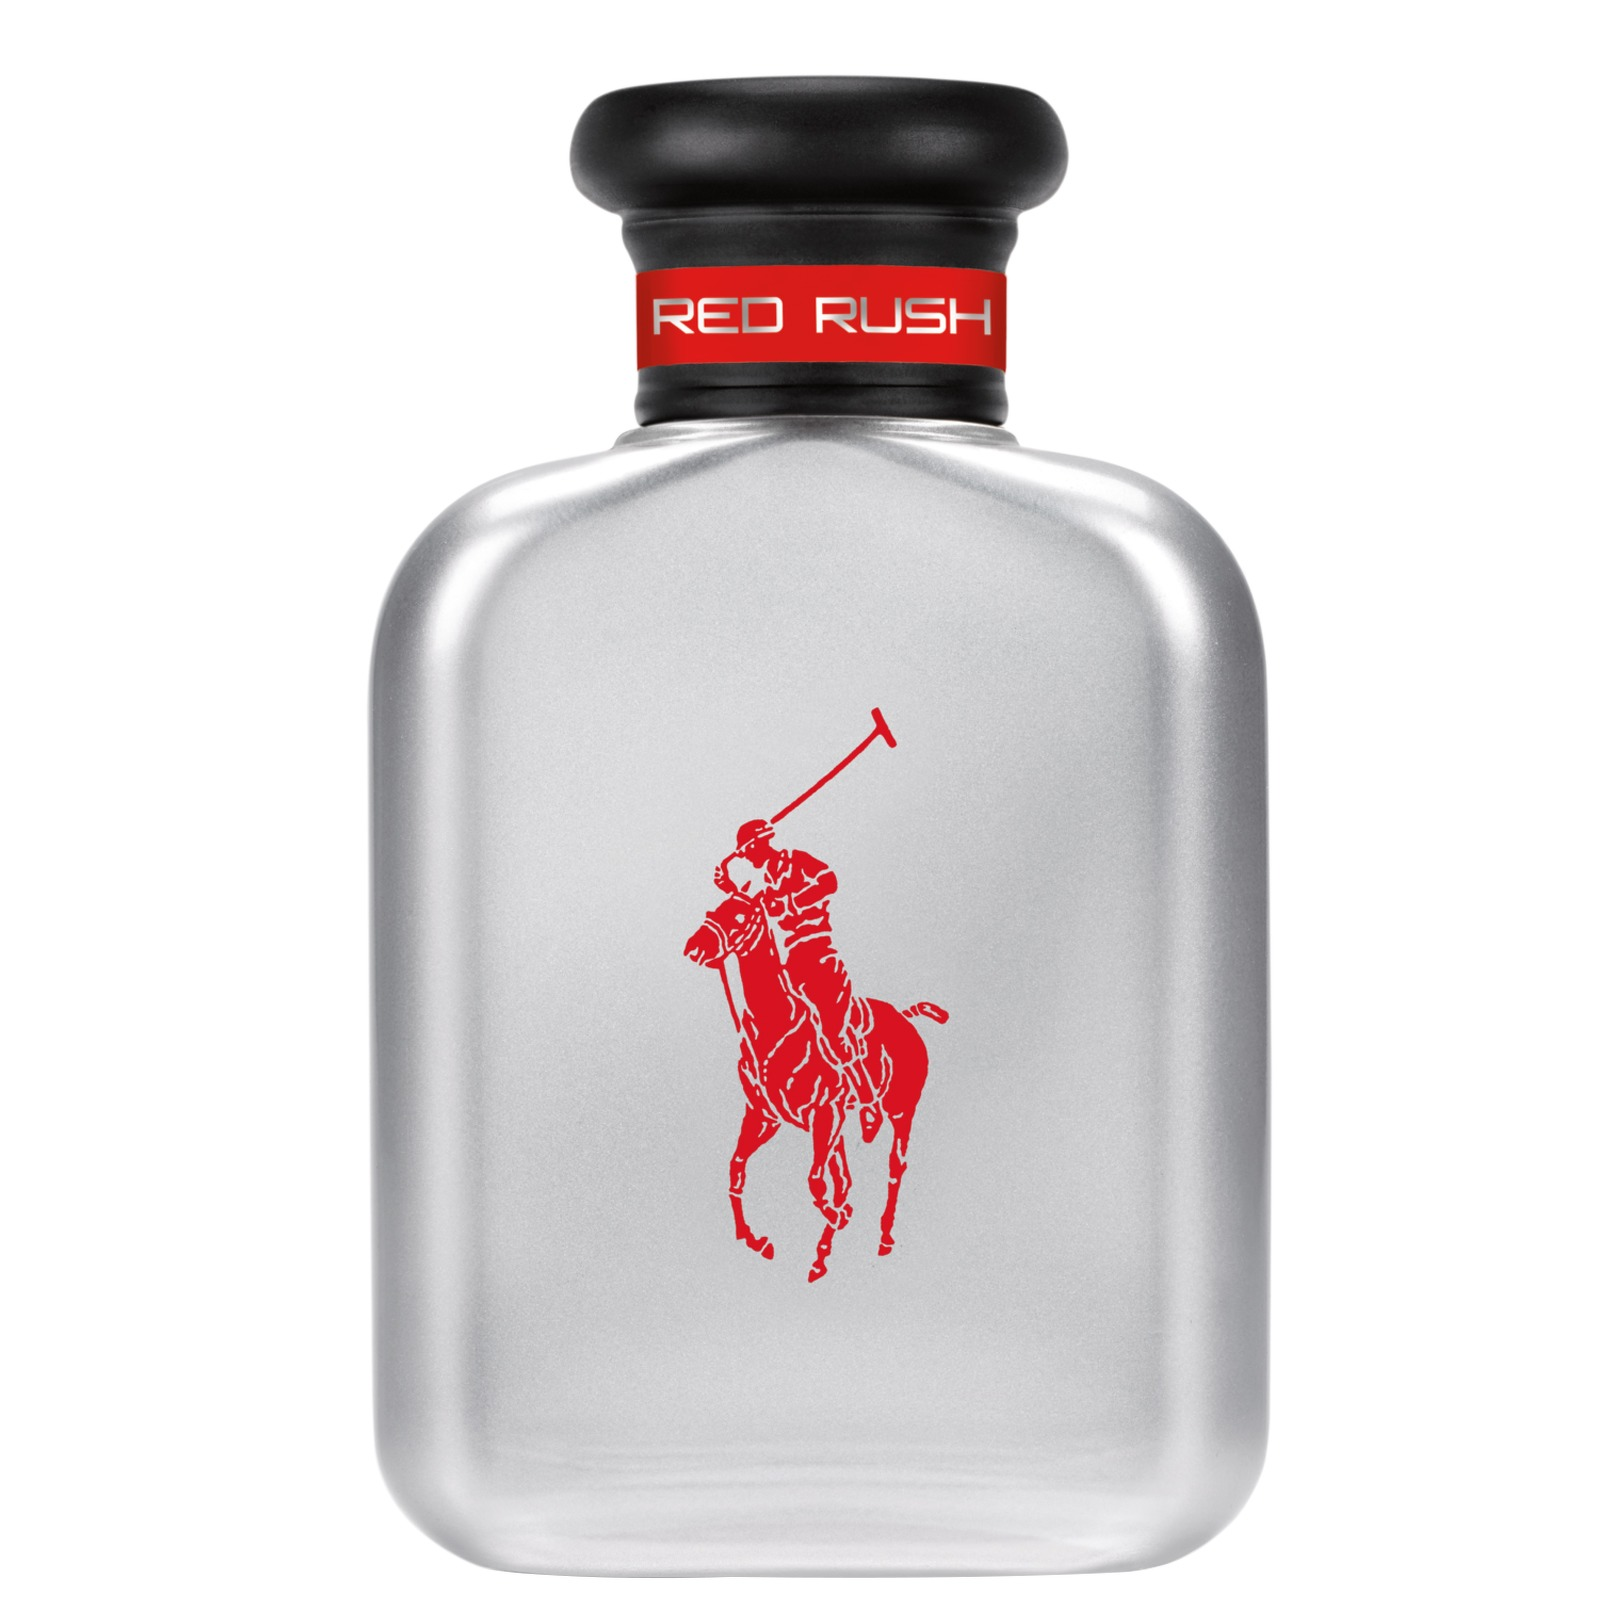 RALPH_LAUREN_POLO_RED_RUSH.